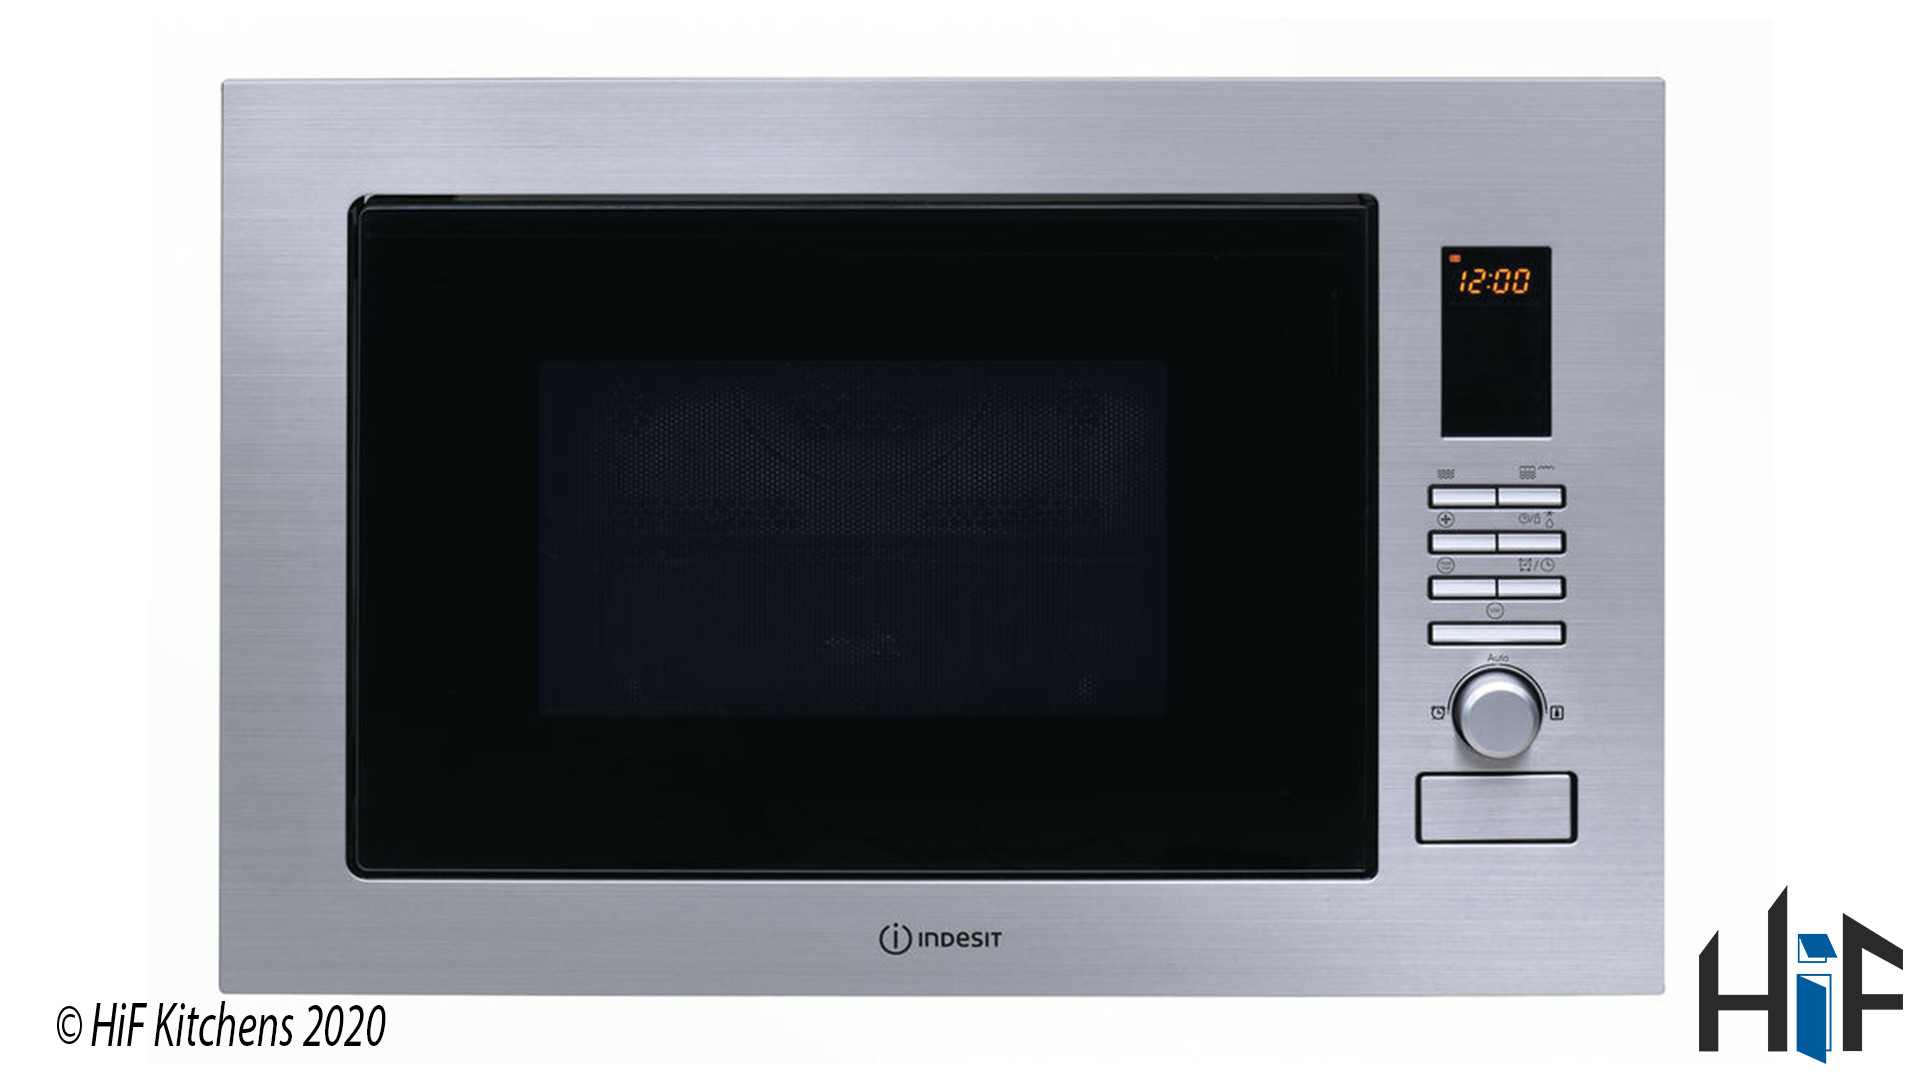 Indesit MWI222.2X Built-in Microwave supplied by HiF Kitchens